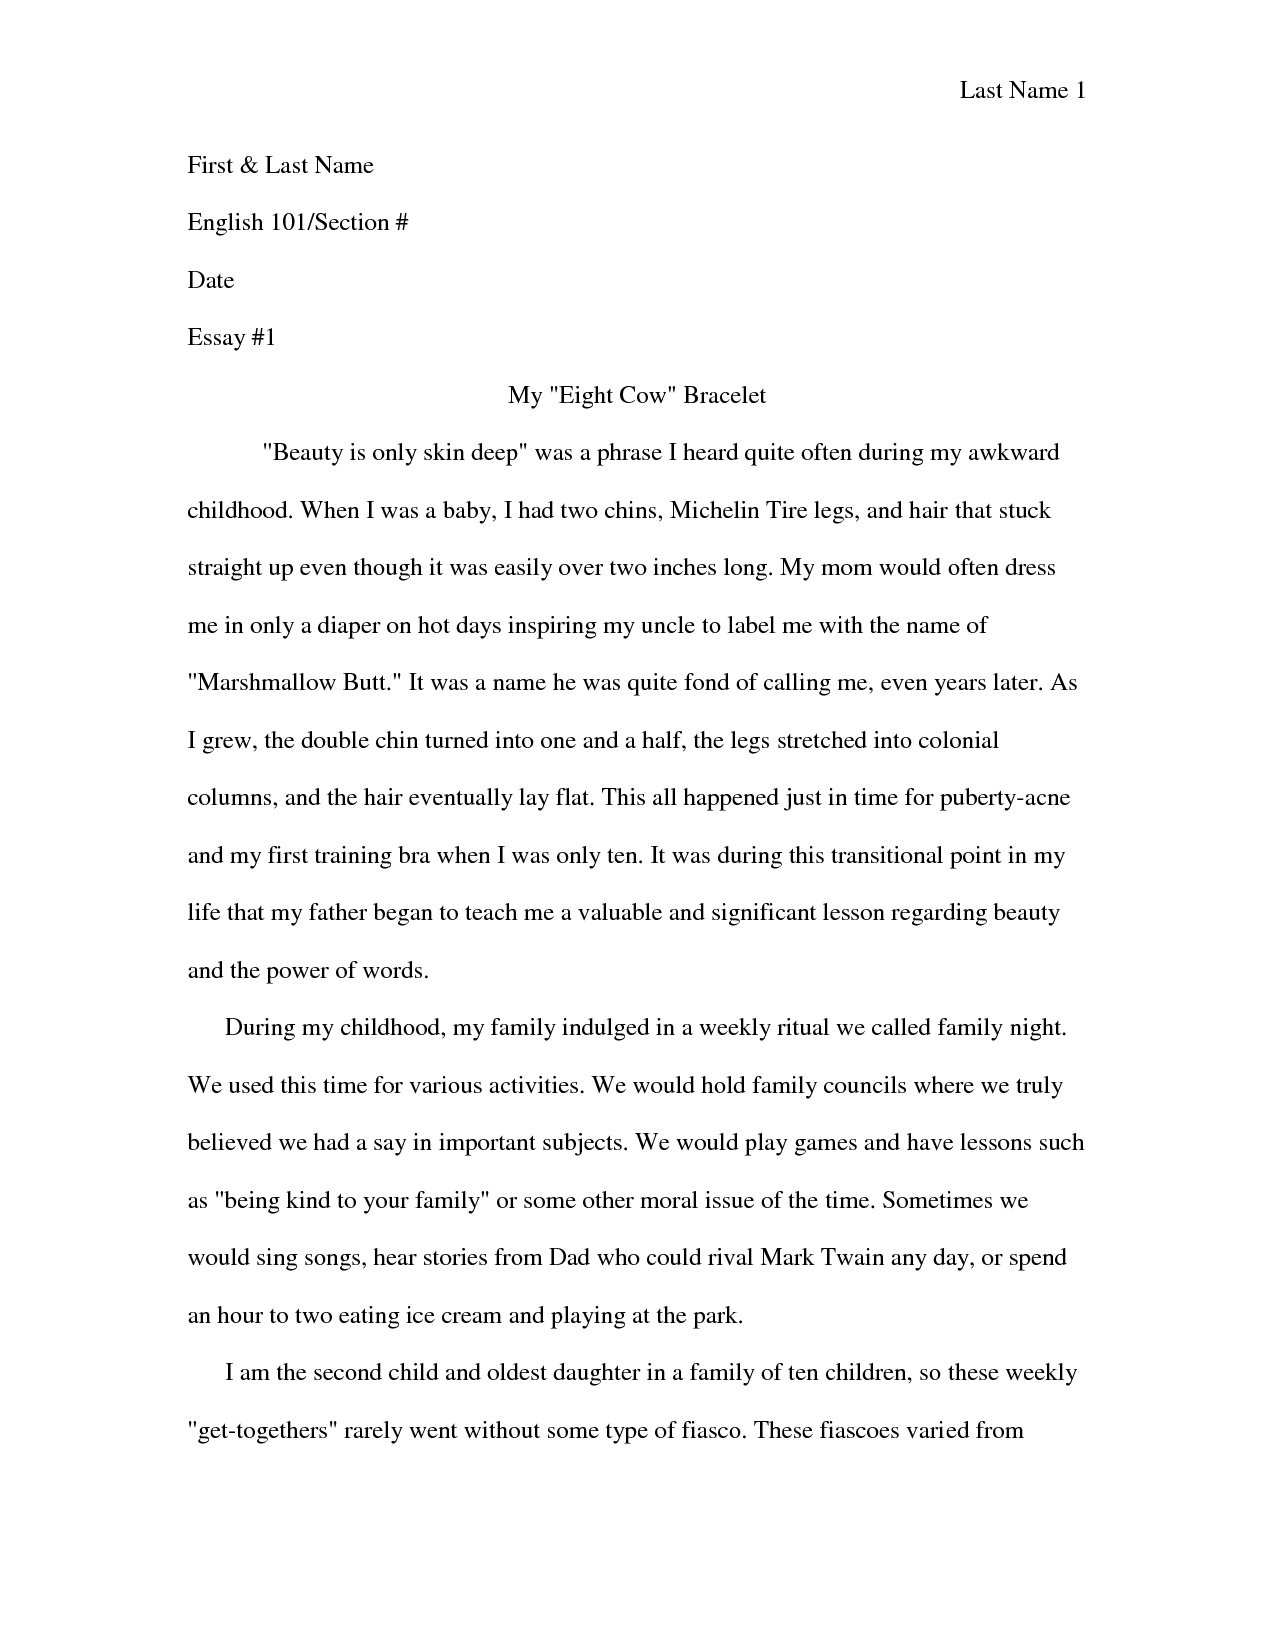 006 Essayample Writing Narrativeamples Personal An For College Application Resume Write Sch Academia Research Center Ge Powerpoint 4th Grade Ppt Outline Step By Mrsniradale Archaicawful Example Narrative Essay Childhood Memory Losing Loved One Excellent Spm Full